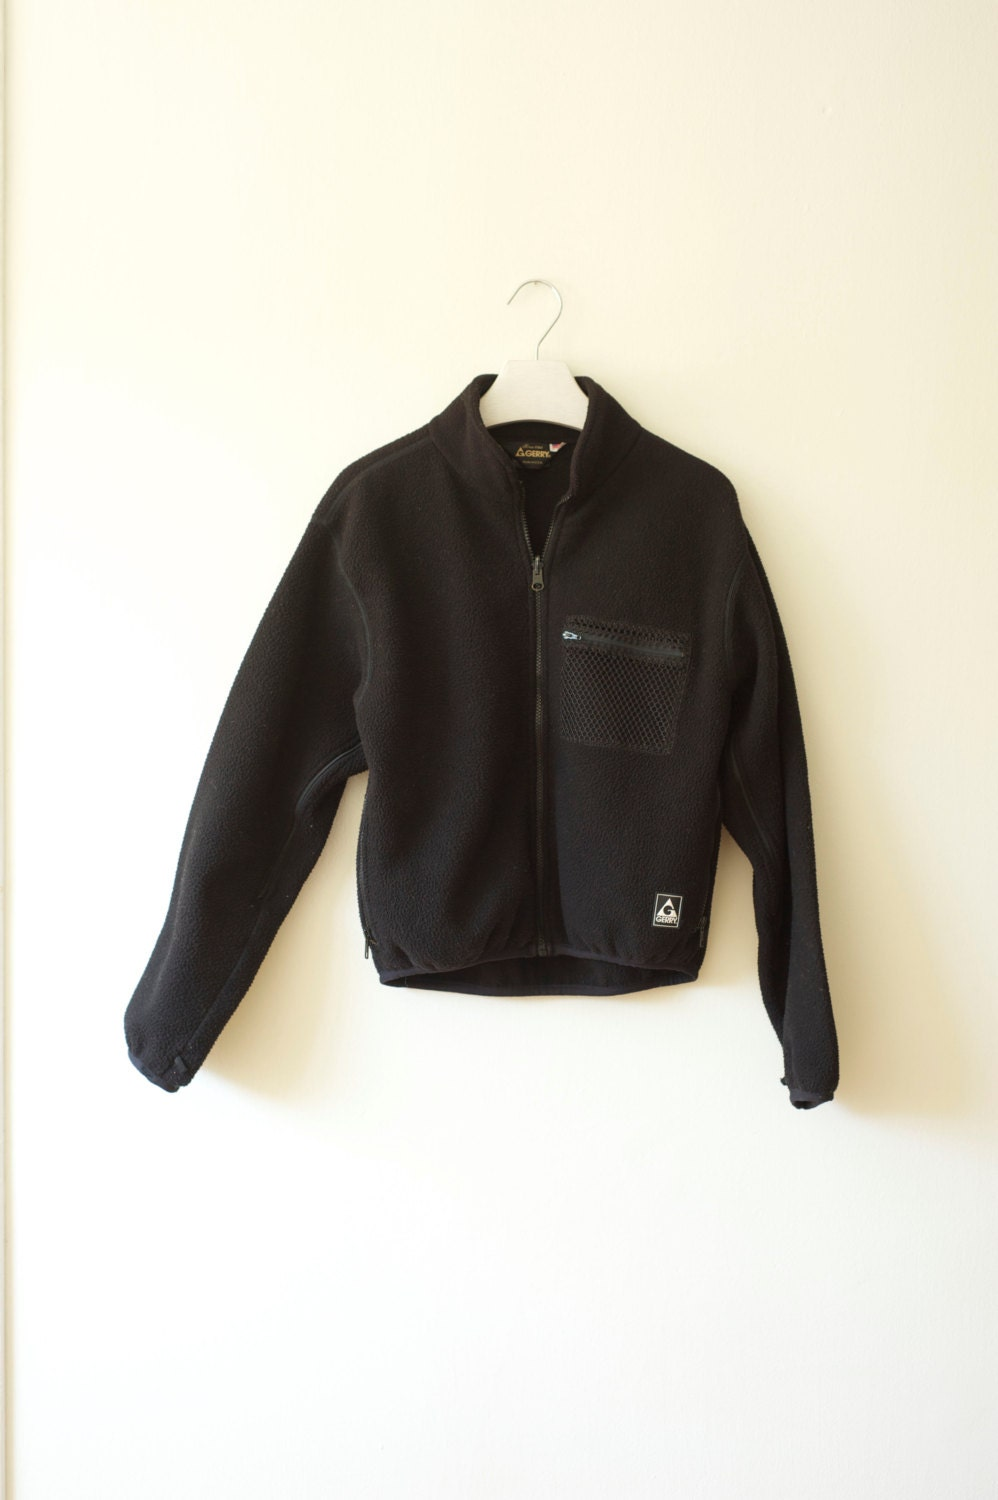 Vintage Gerry Black Fleece Jacket, Made in USA, Mens Small / ITEM522